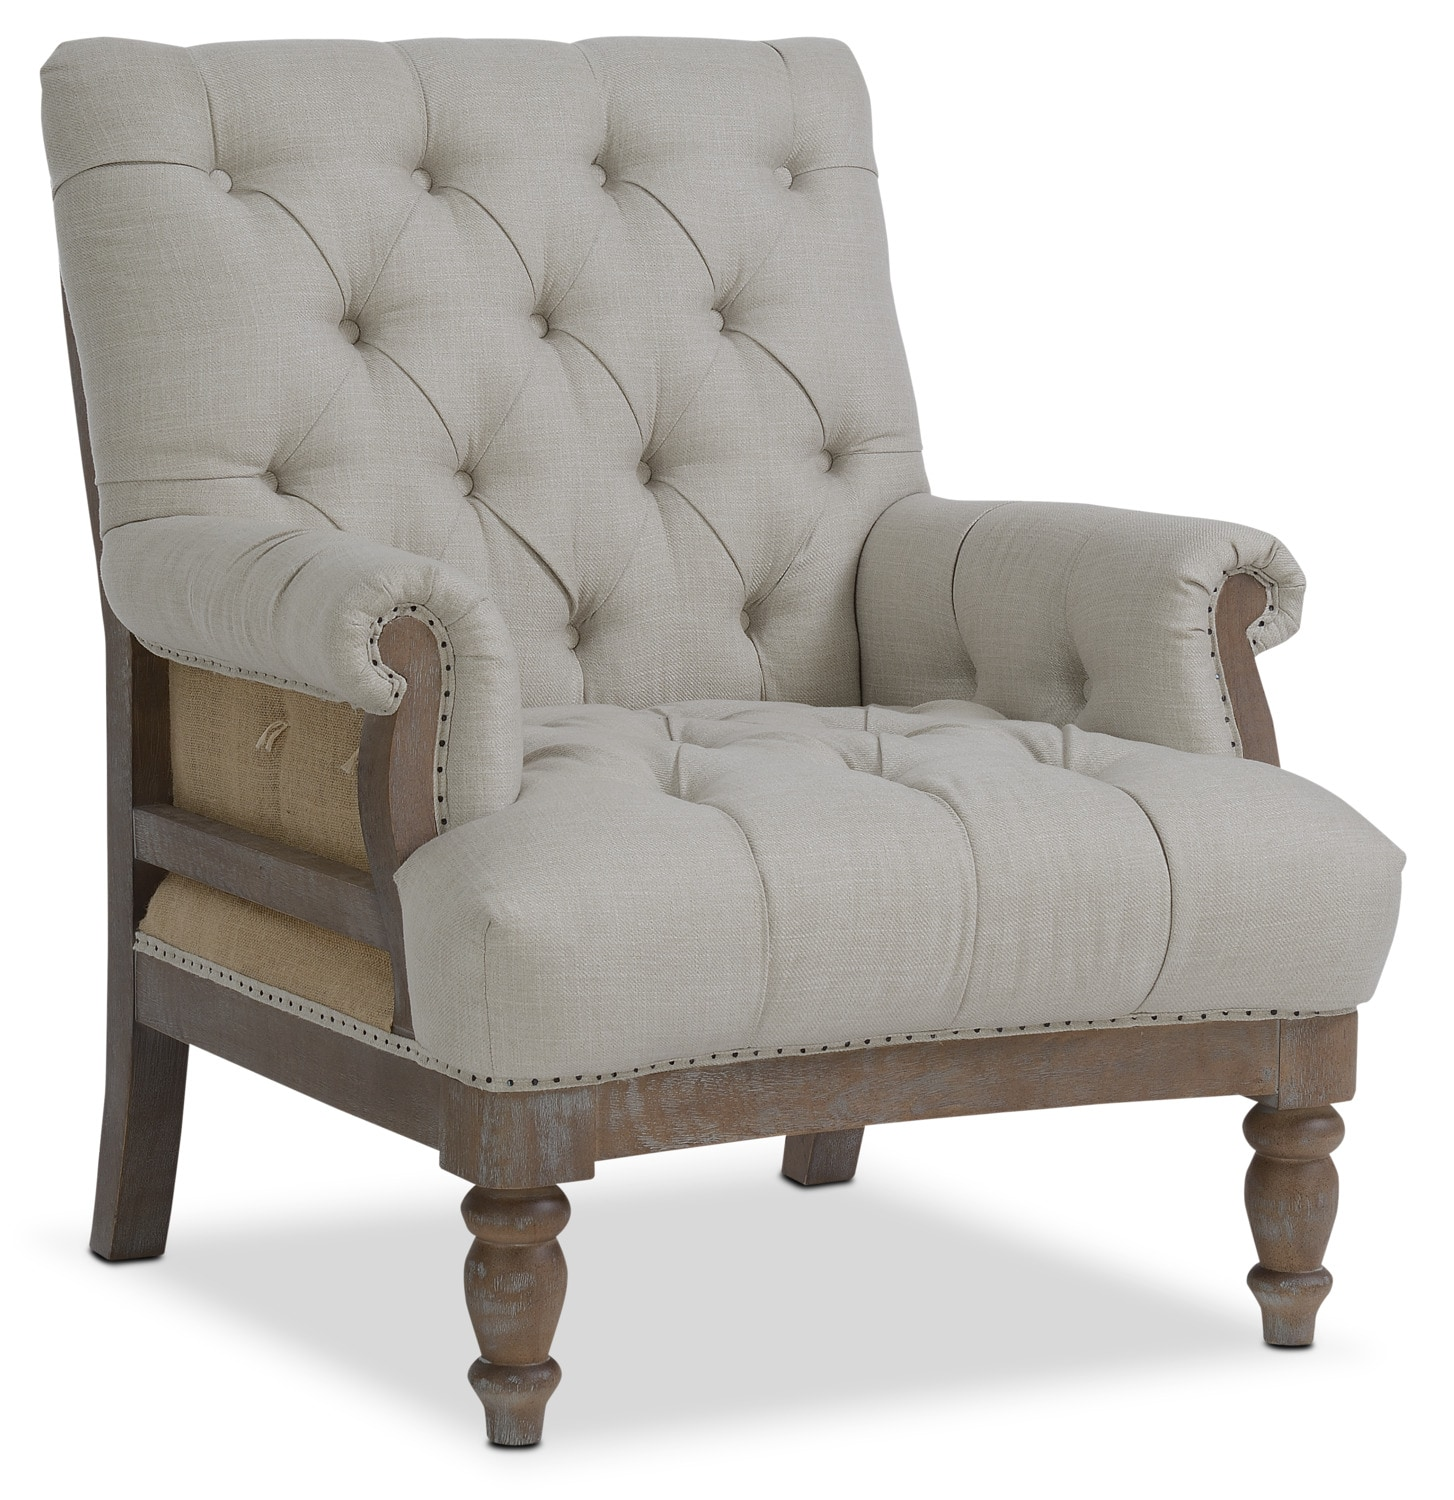 Accent Furniture For Living Room: Bridget Accent Chair - Cream